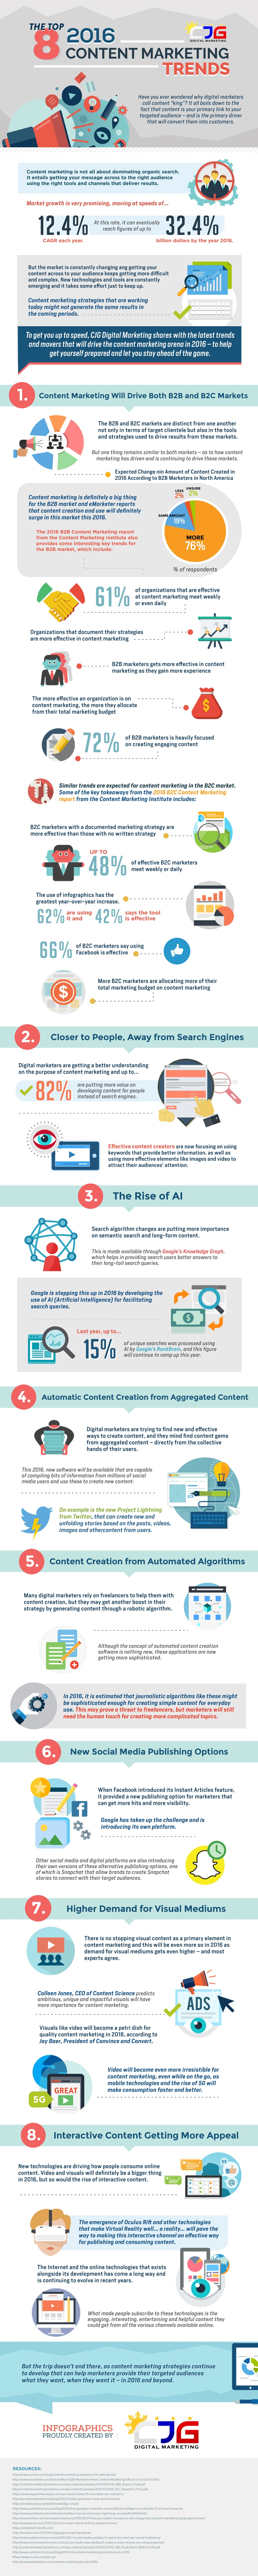 The-Top-8-2016-Content-Marketing-Trends